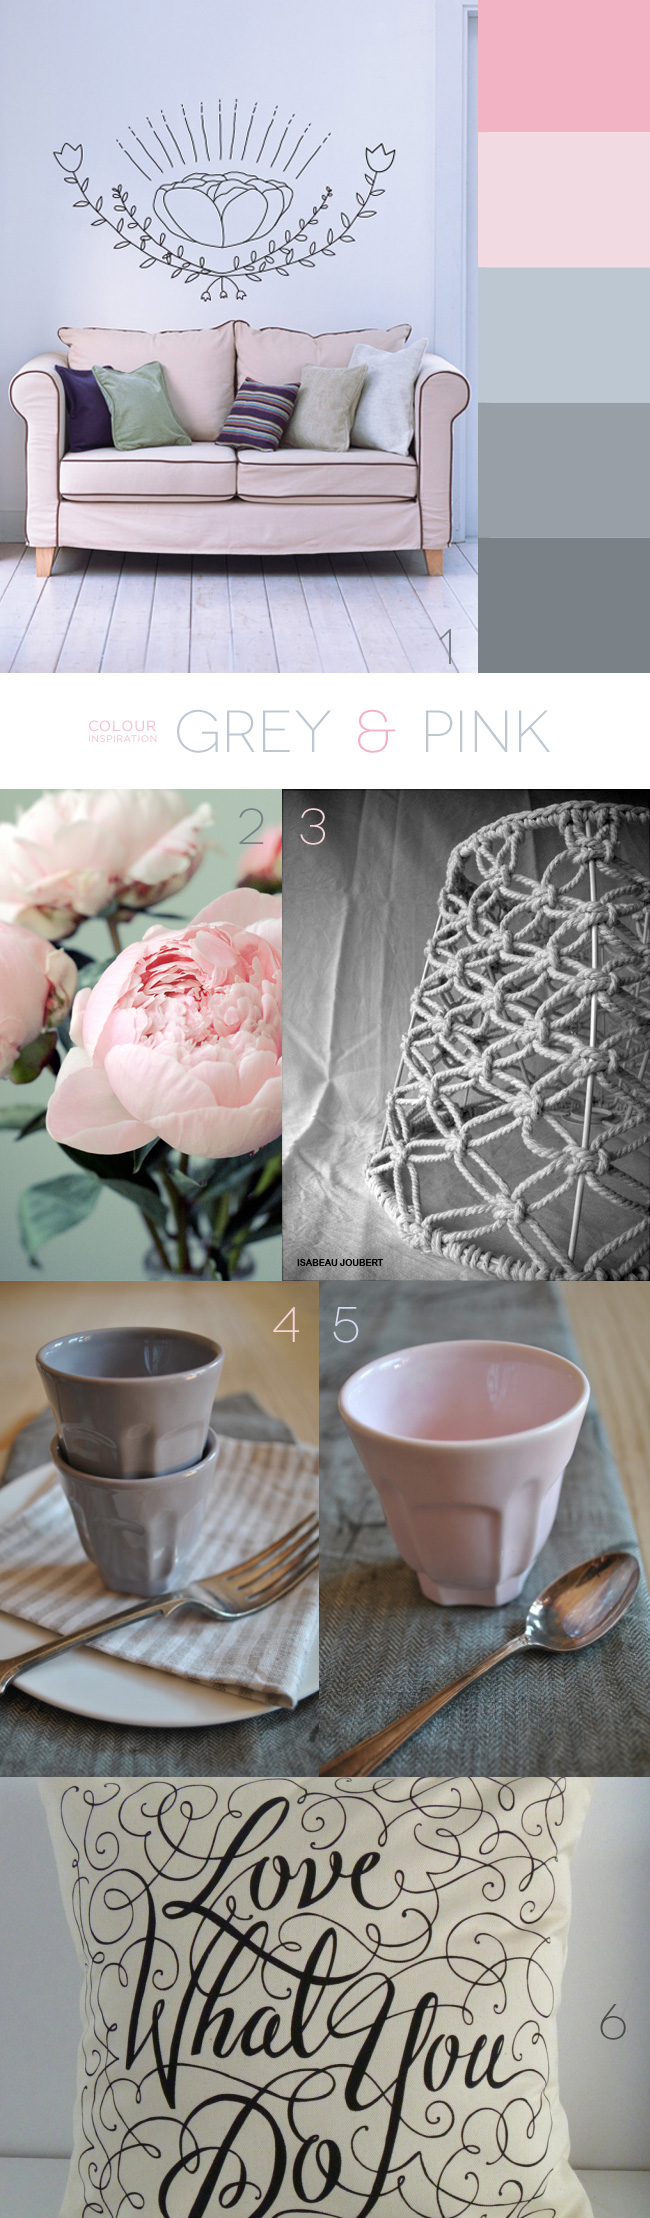 Grey & Pink Colour Inspiration